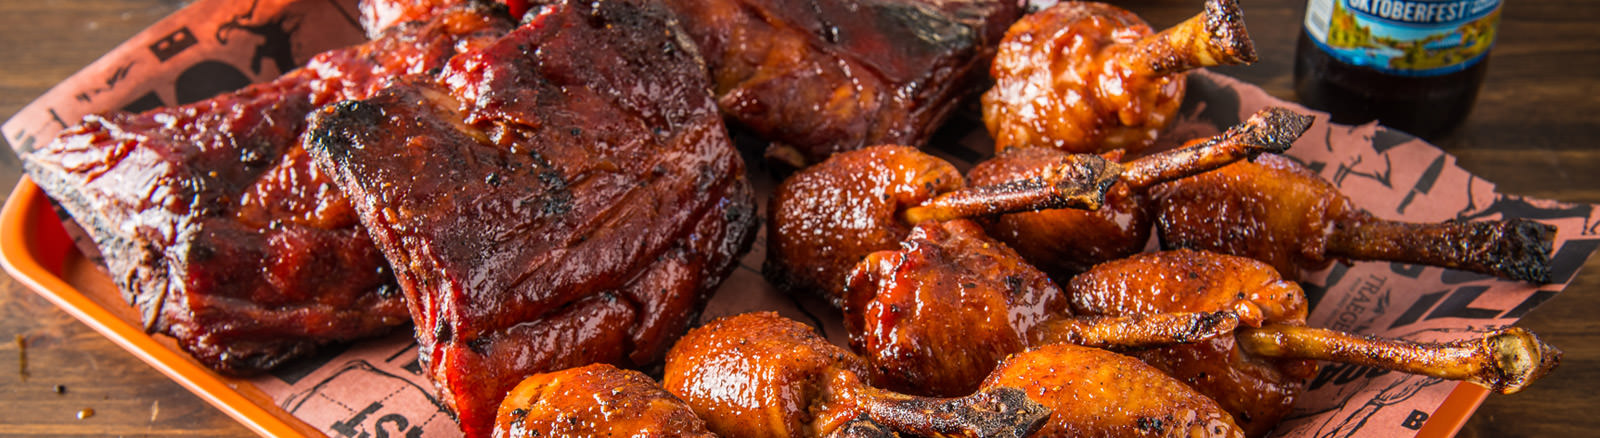 chicken_lollipops-Traeger-Wood-Pellet-Grills_RE_HE